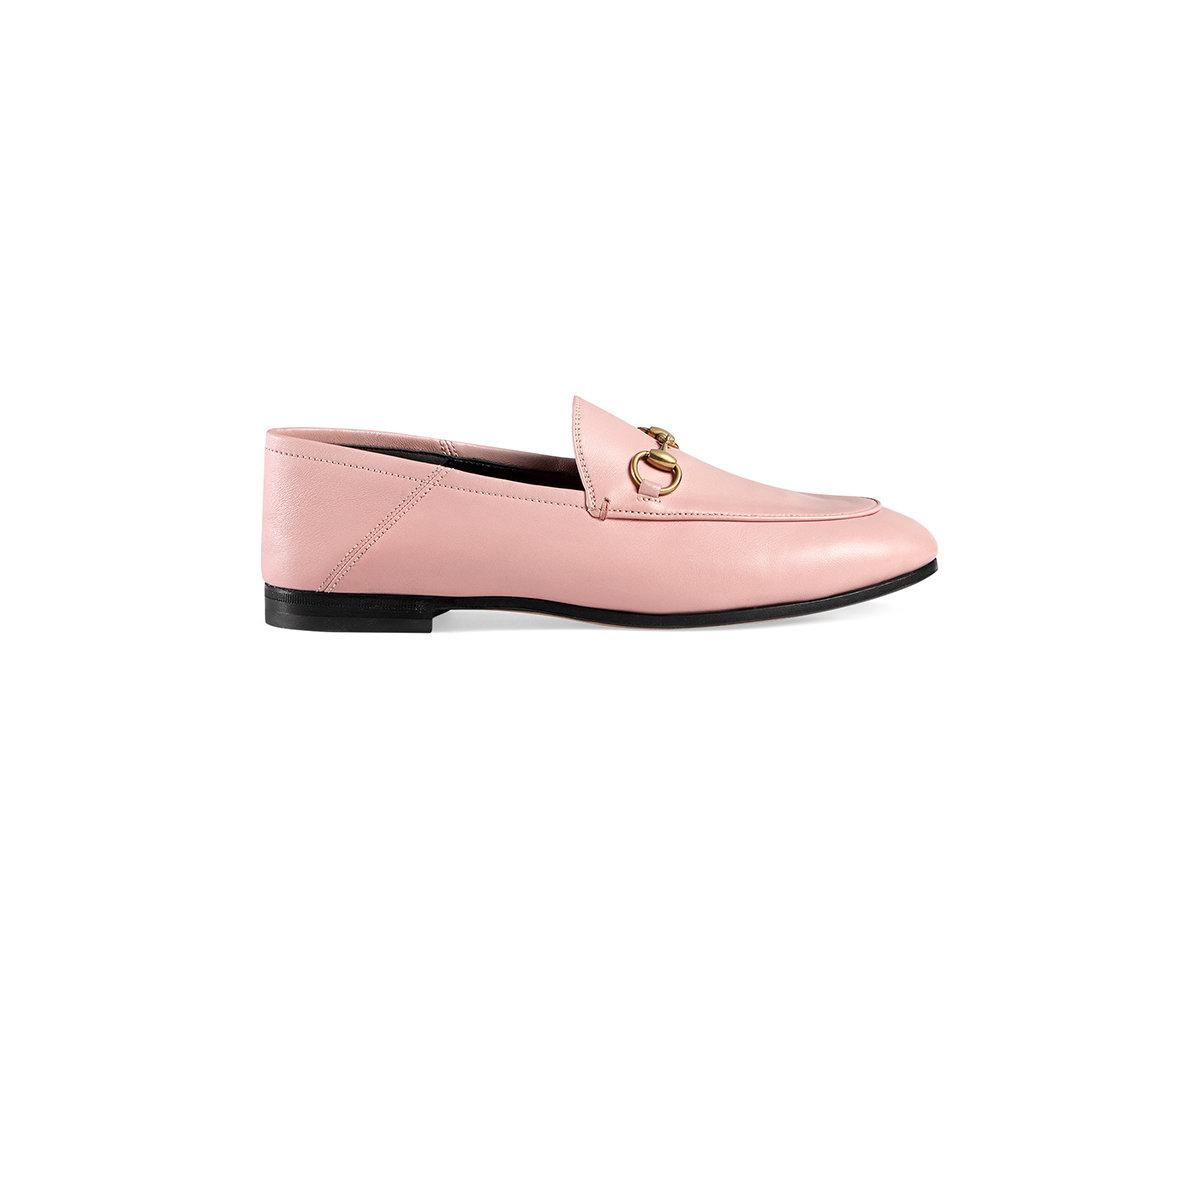 Pink Brixton Crushback Loafers Gucci 1pUxZ1Kq2T